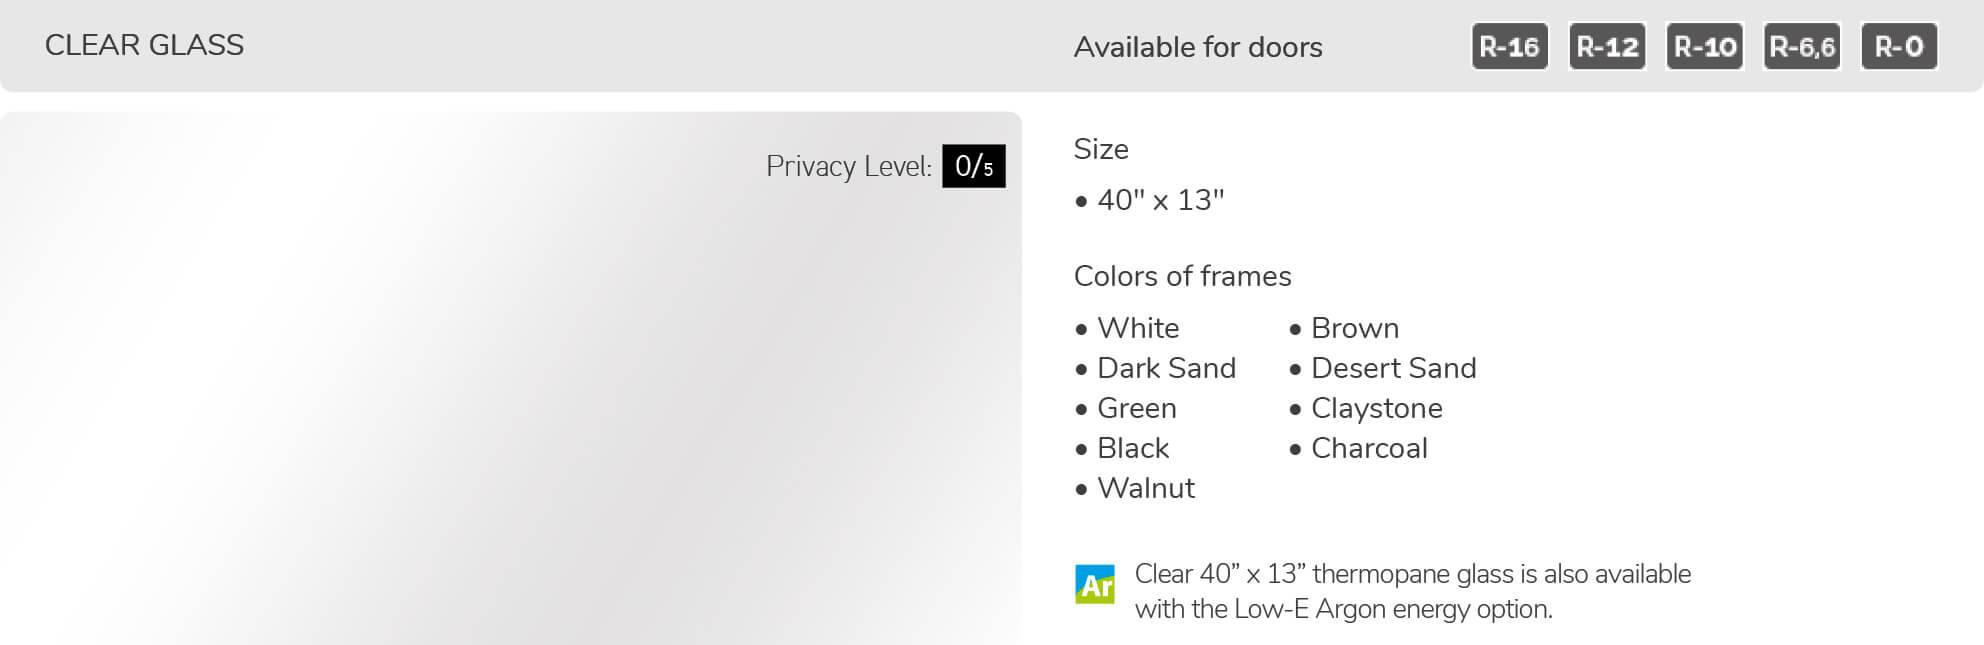 Clear glass, 40' x 13', available for doors R-16, R-12, R-10, R-6,6 and R-0